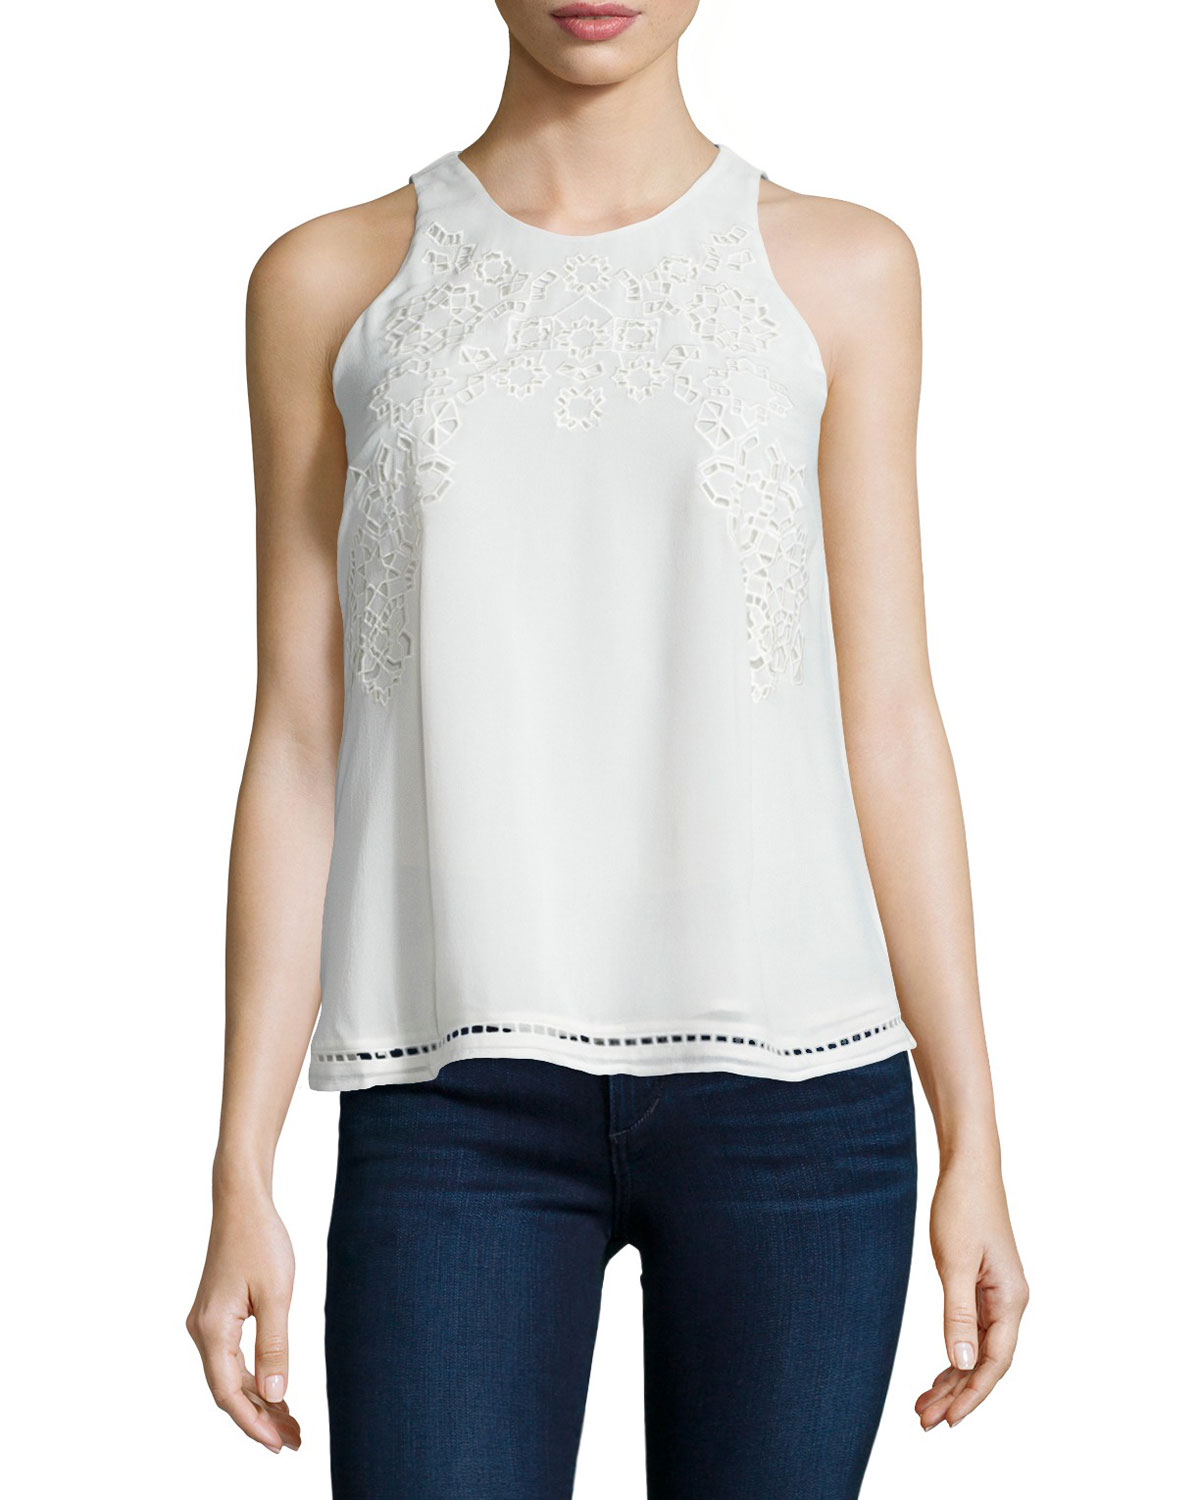 Perdue Crocheted Sleeveless Top